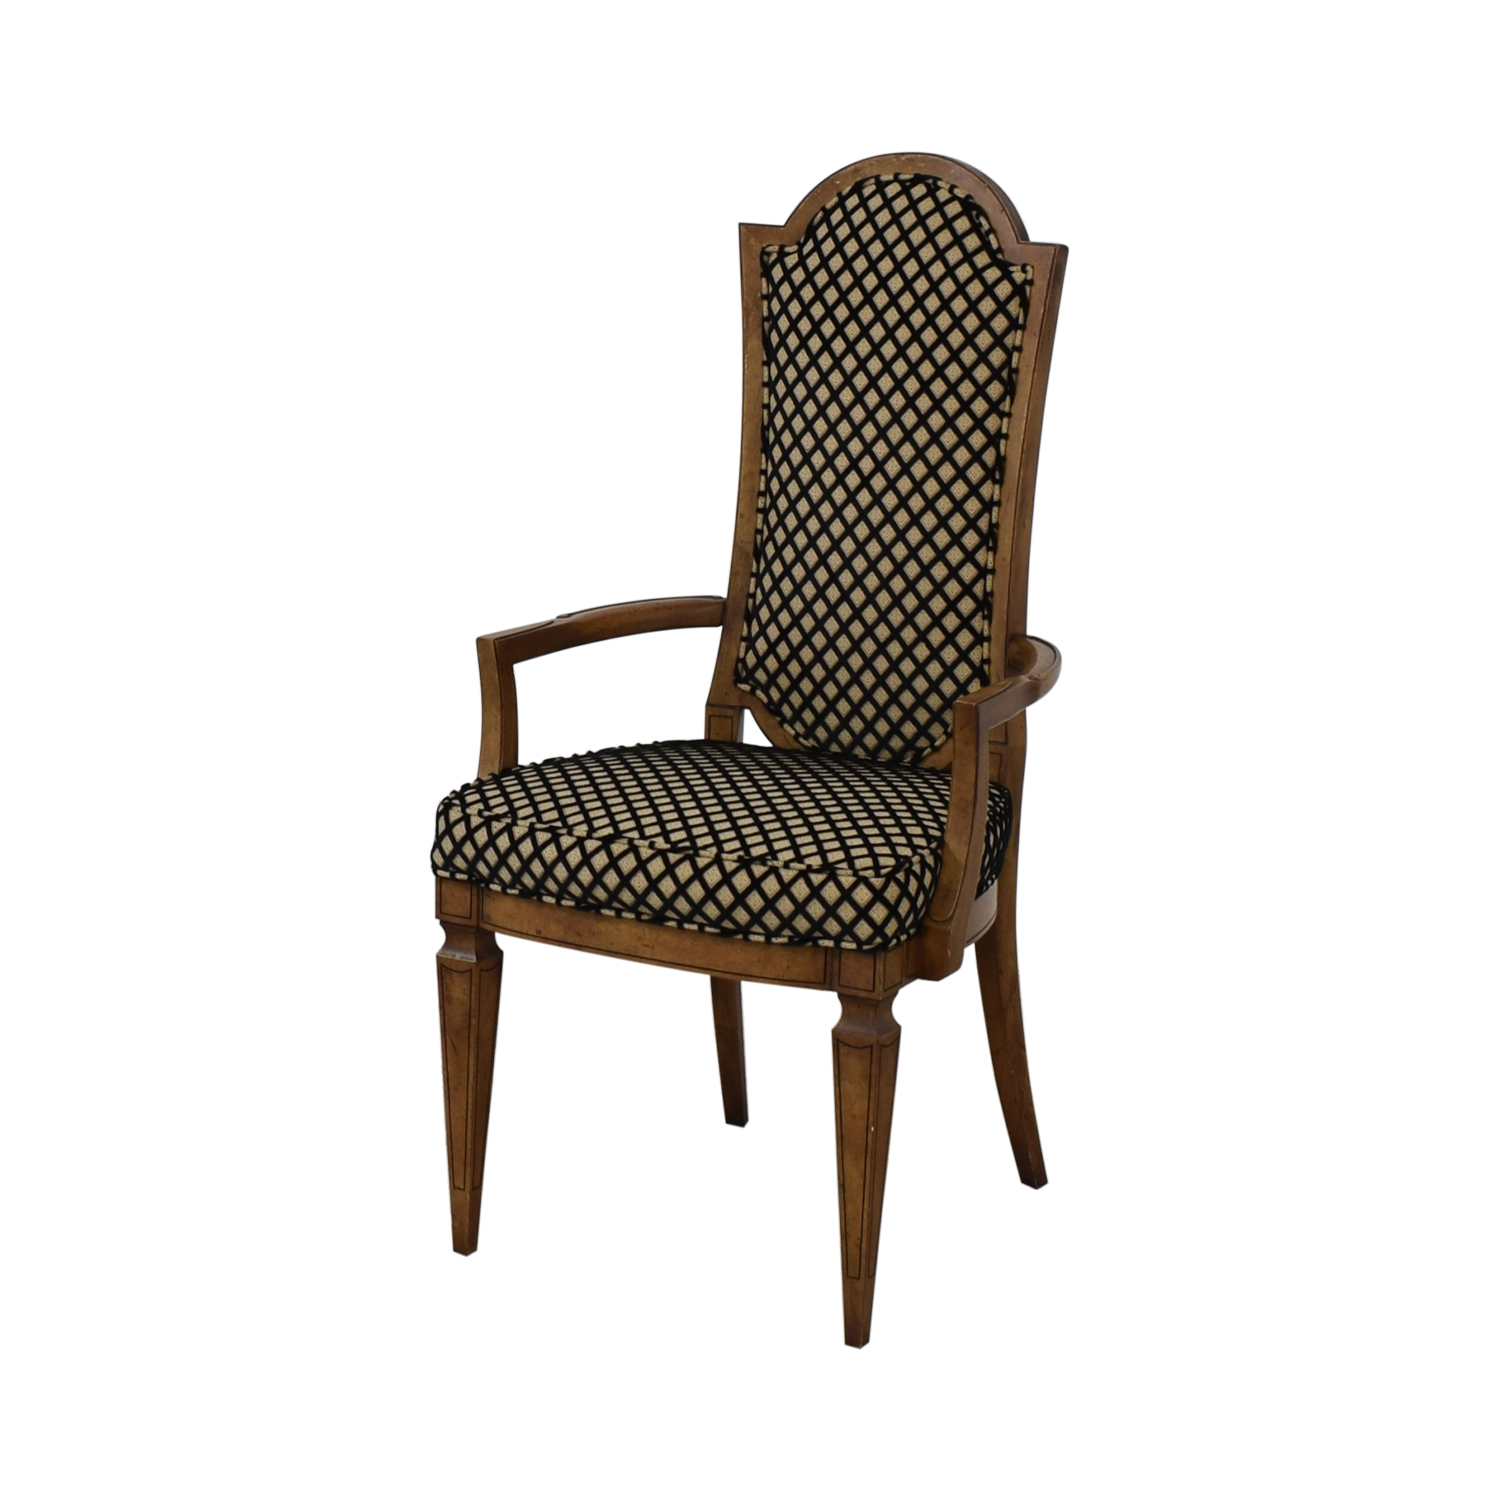 Mastercraft Furniture Patterned Dining Chairs / Dining Chairs